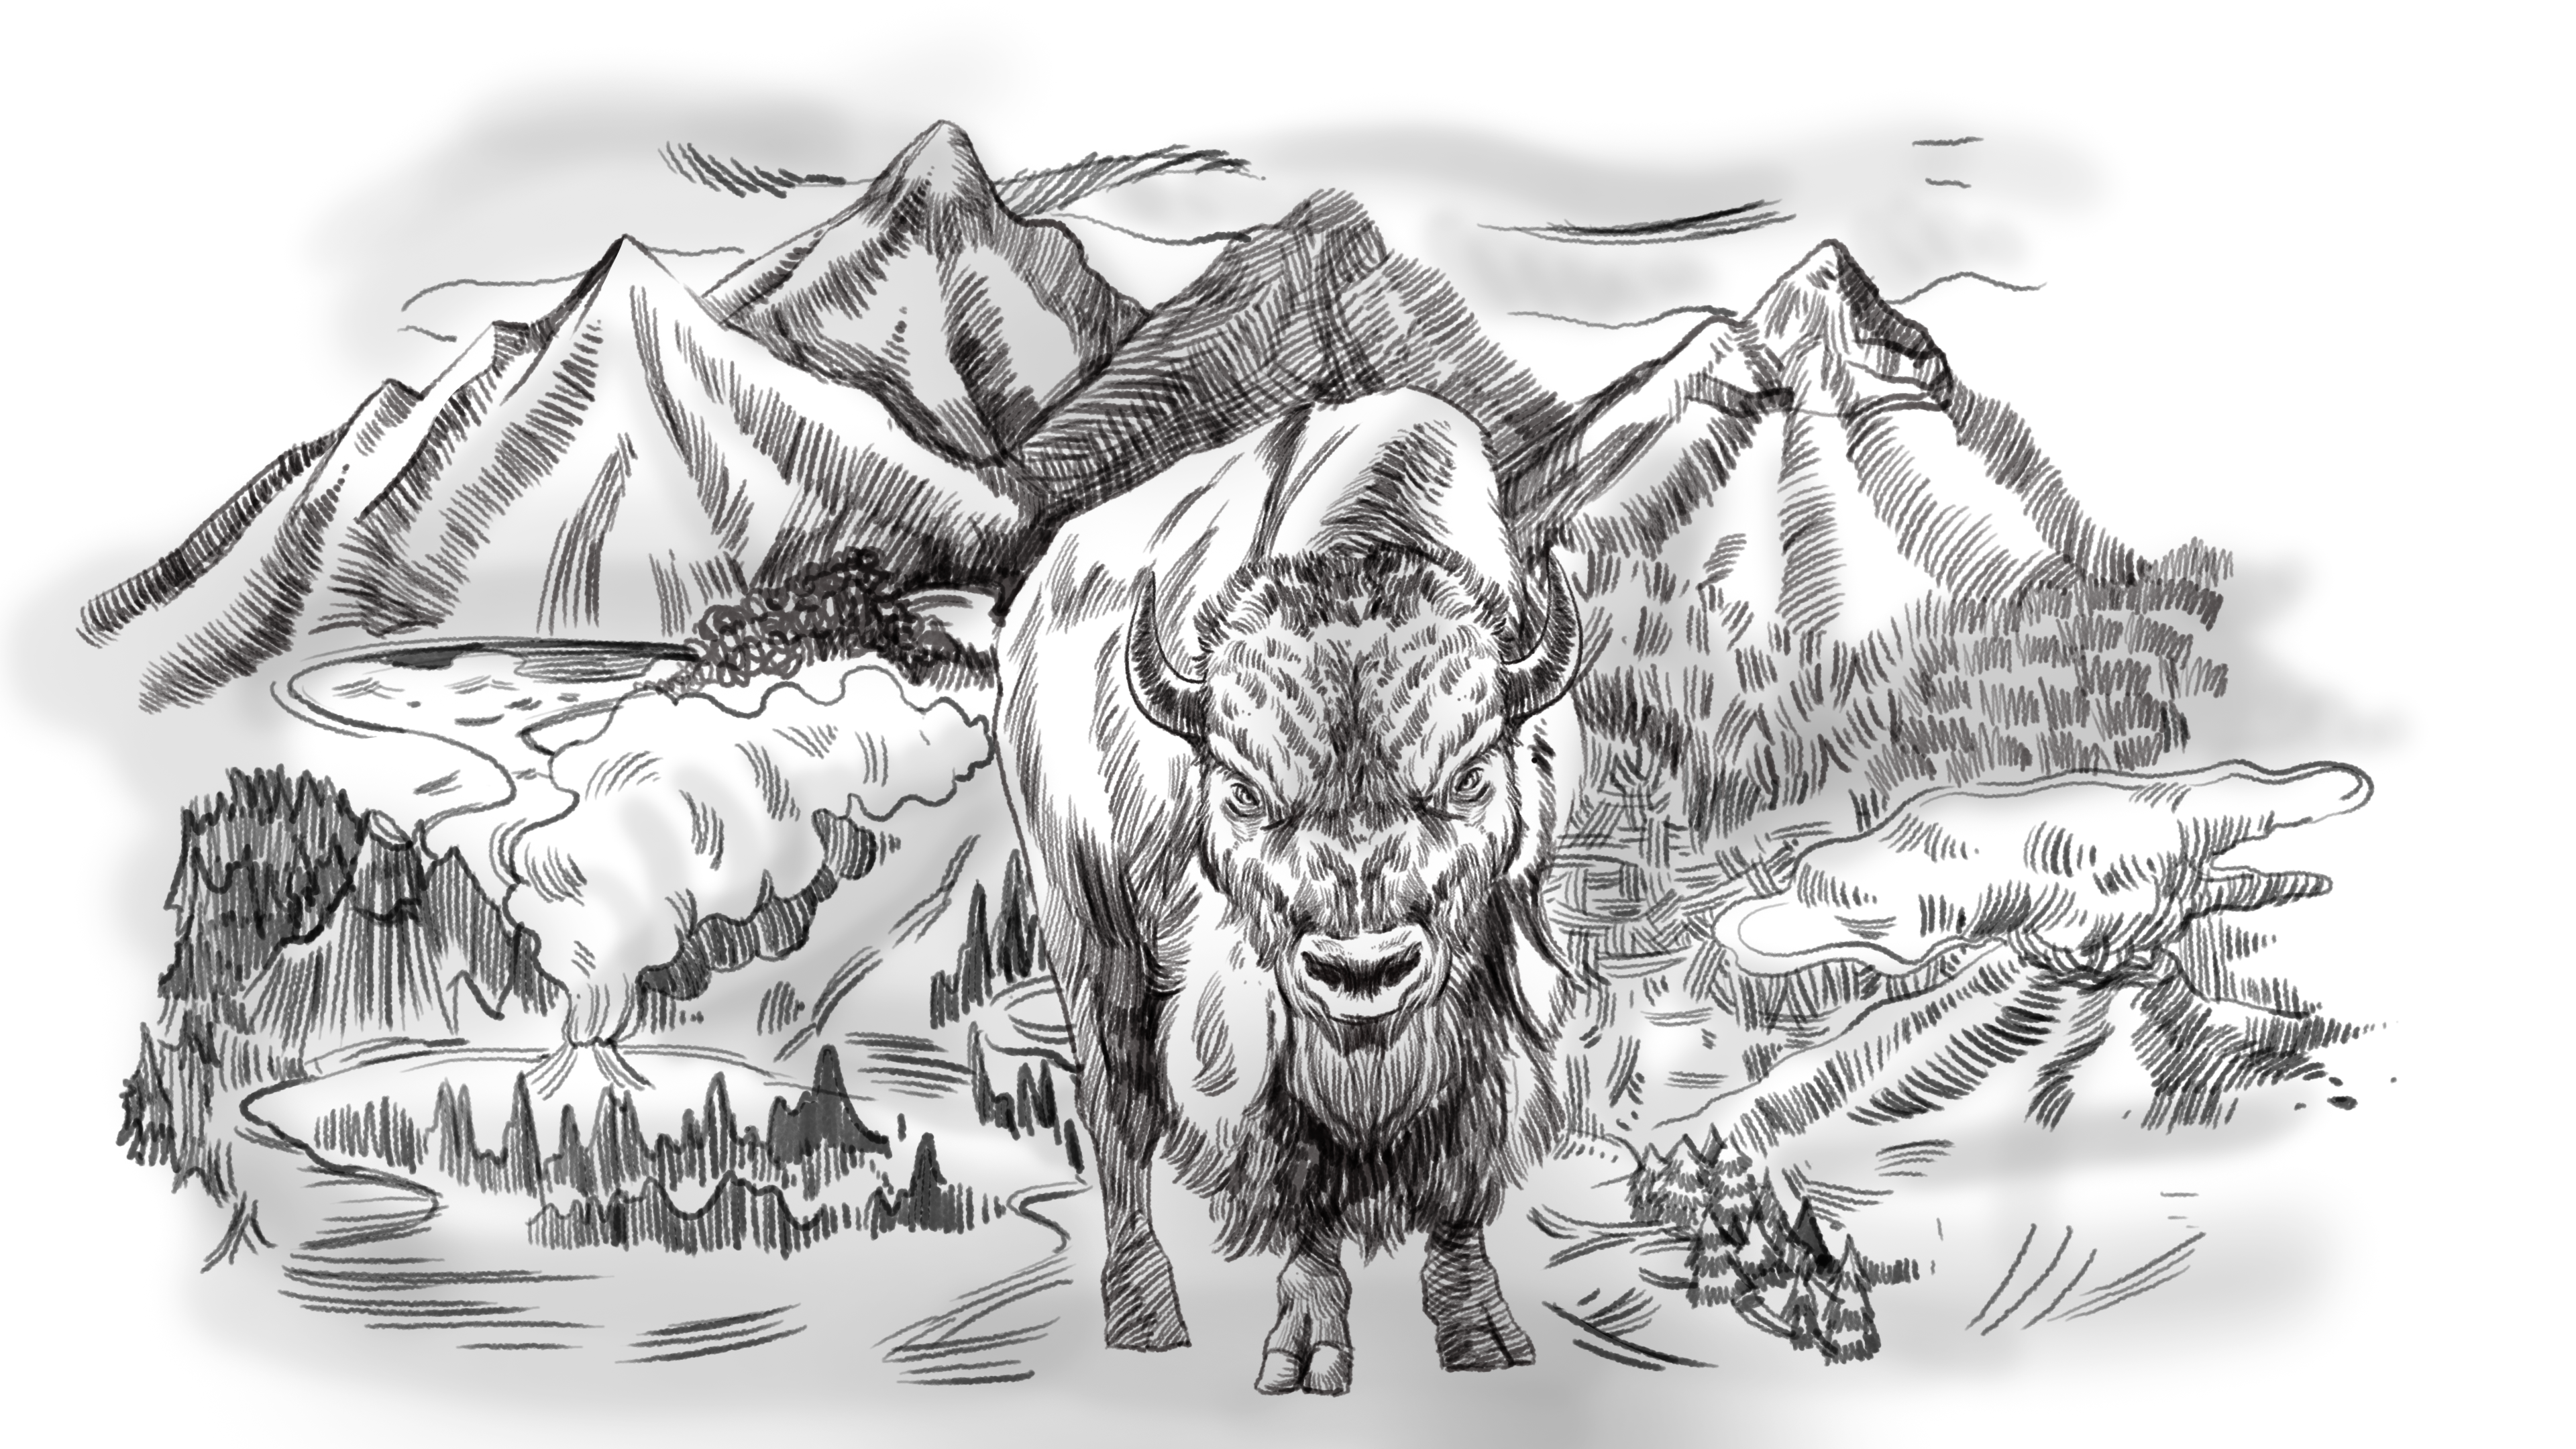 A pencil-style illustration of Raúl, the angry male bison, set against a stylized version of Yellowstone National park